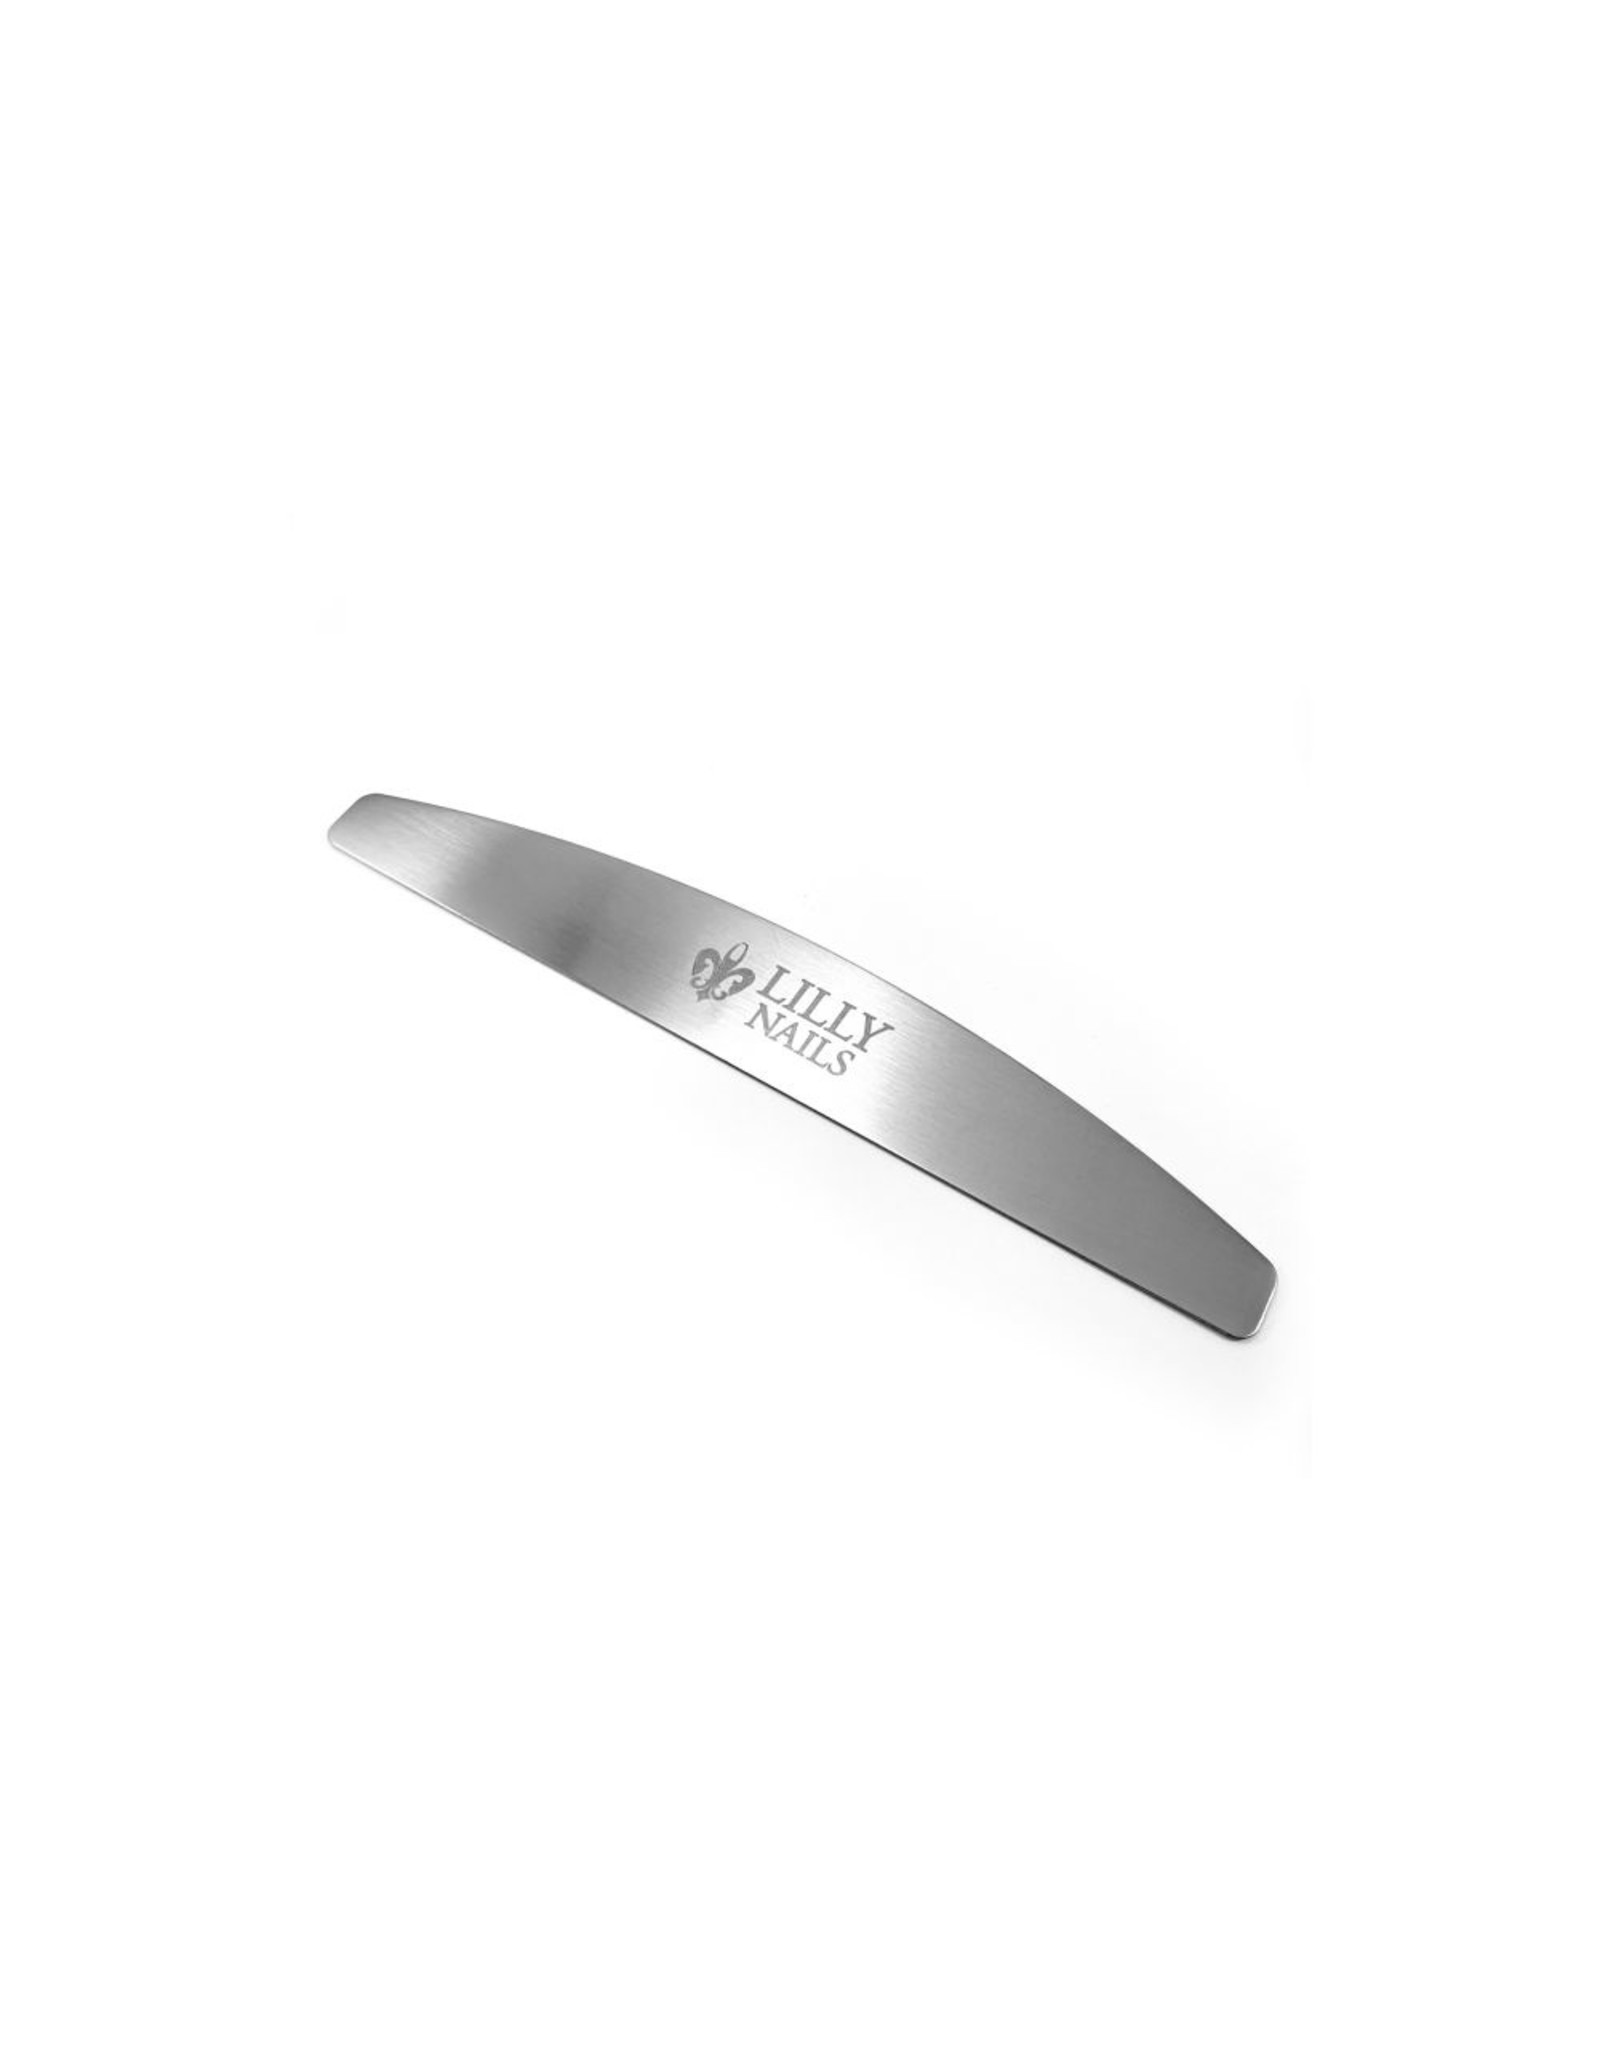 Metal handle for Hygienic Files from Lilly Nails 0.8mm